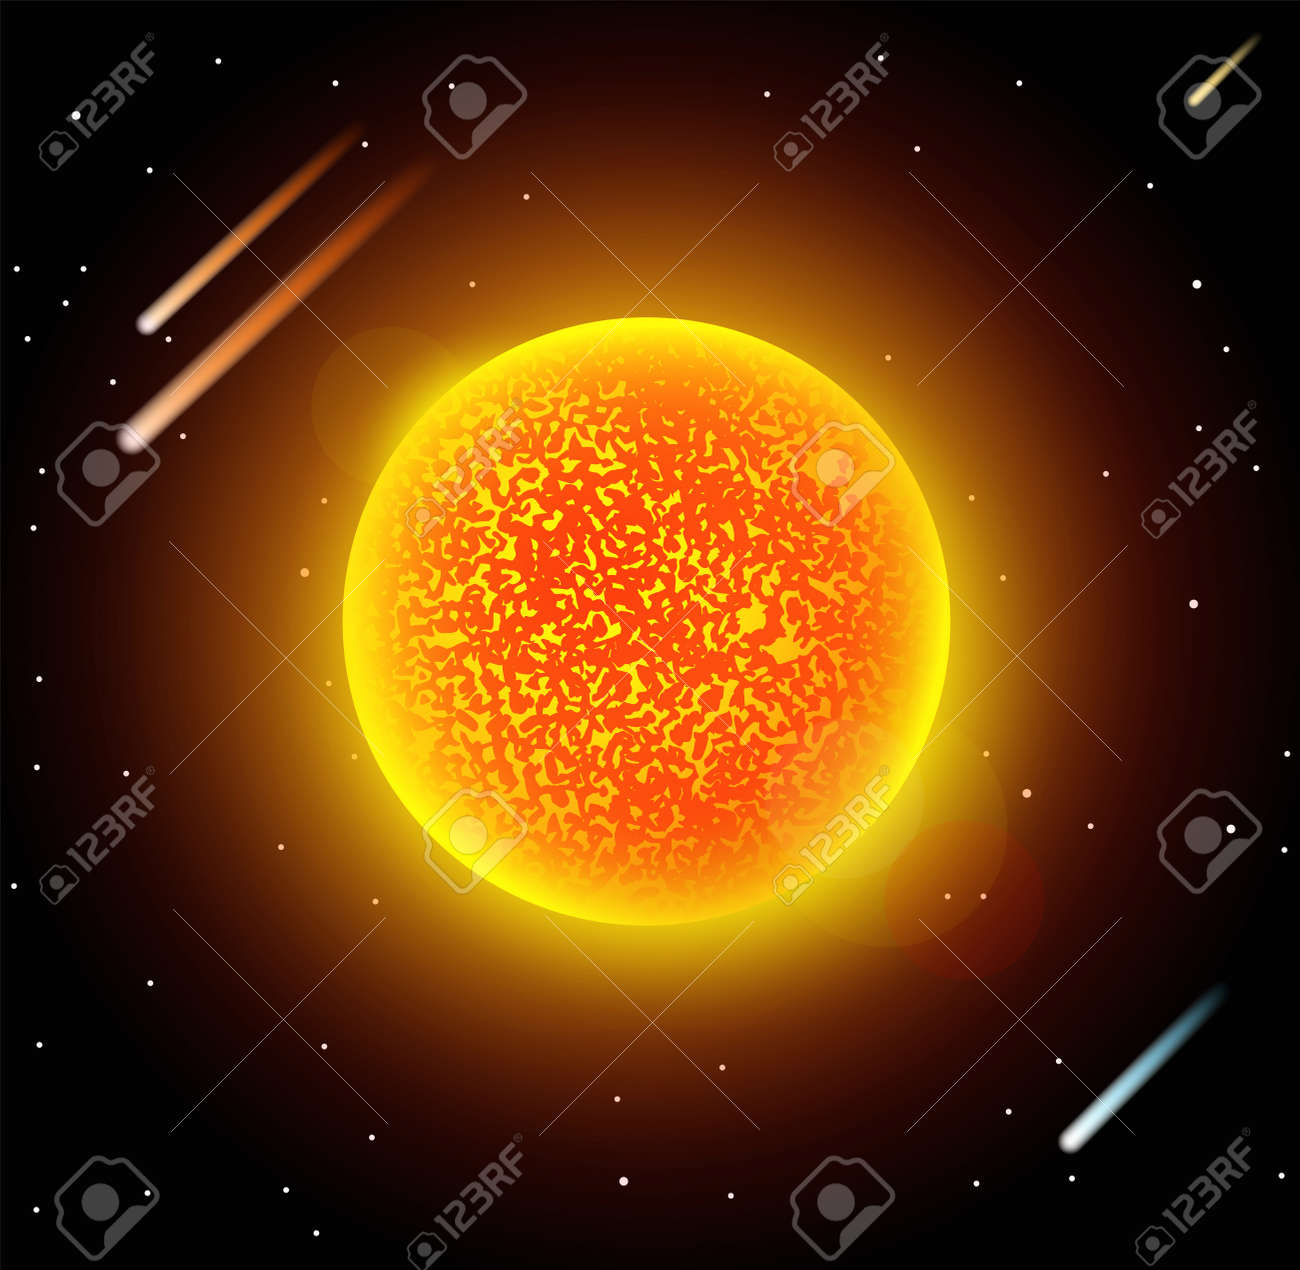 Sun star planet 3d vector illustration globe sun star texture sun star planet 3d vector illustration globe sun star texture map globe vector sun gumiabroncs Image collections